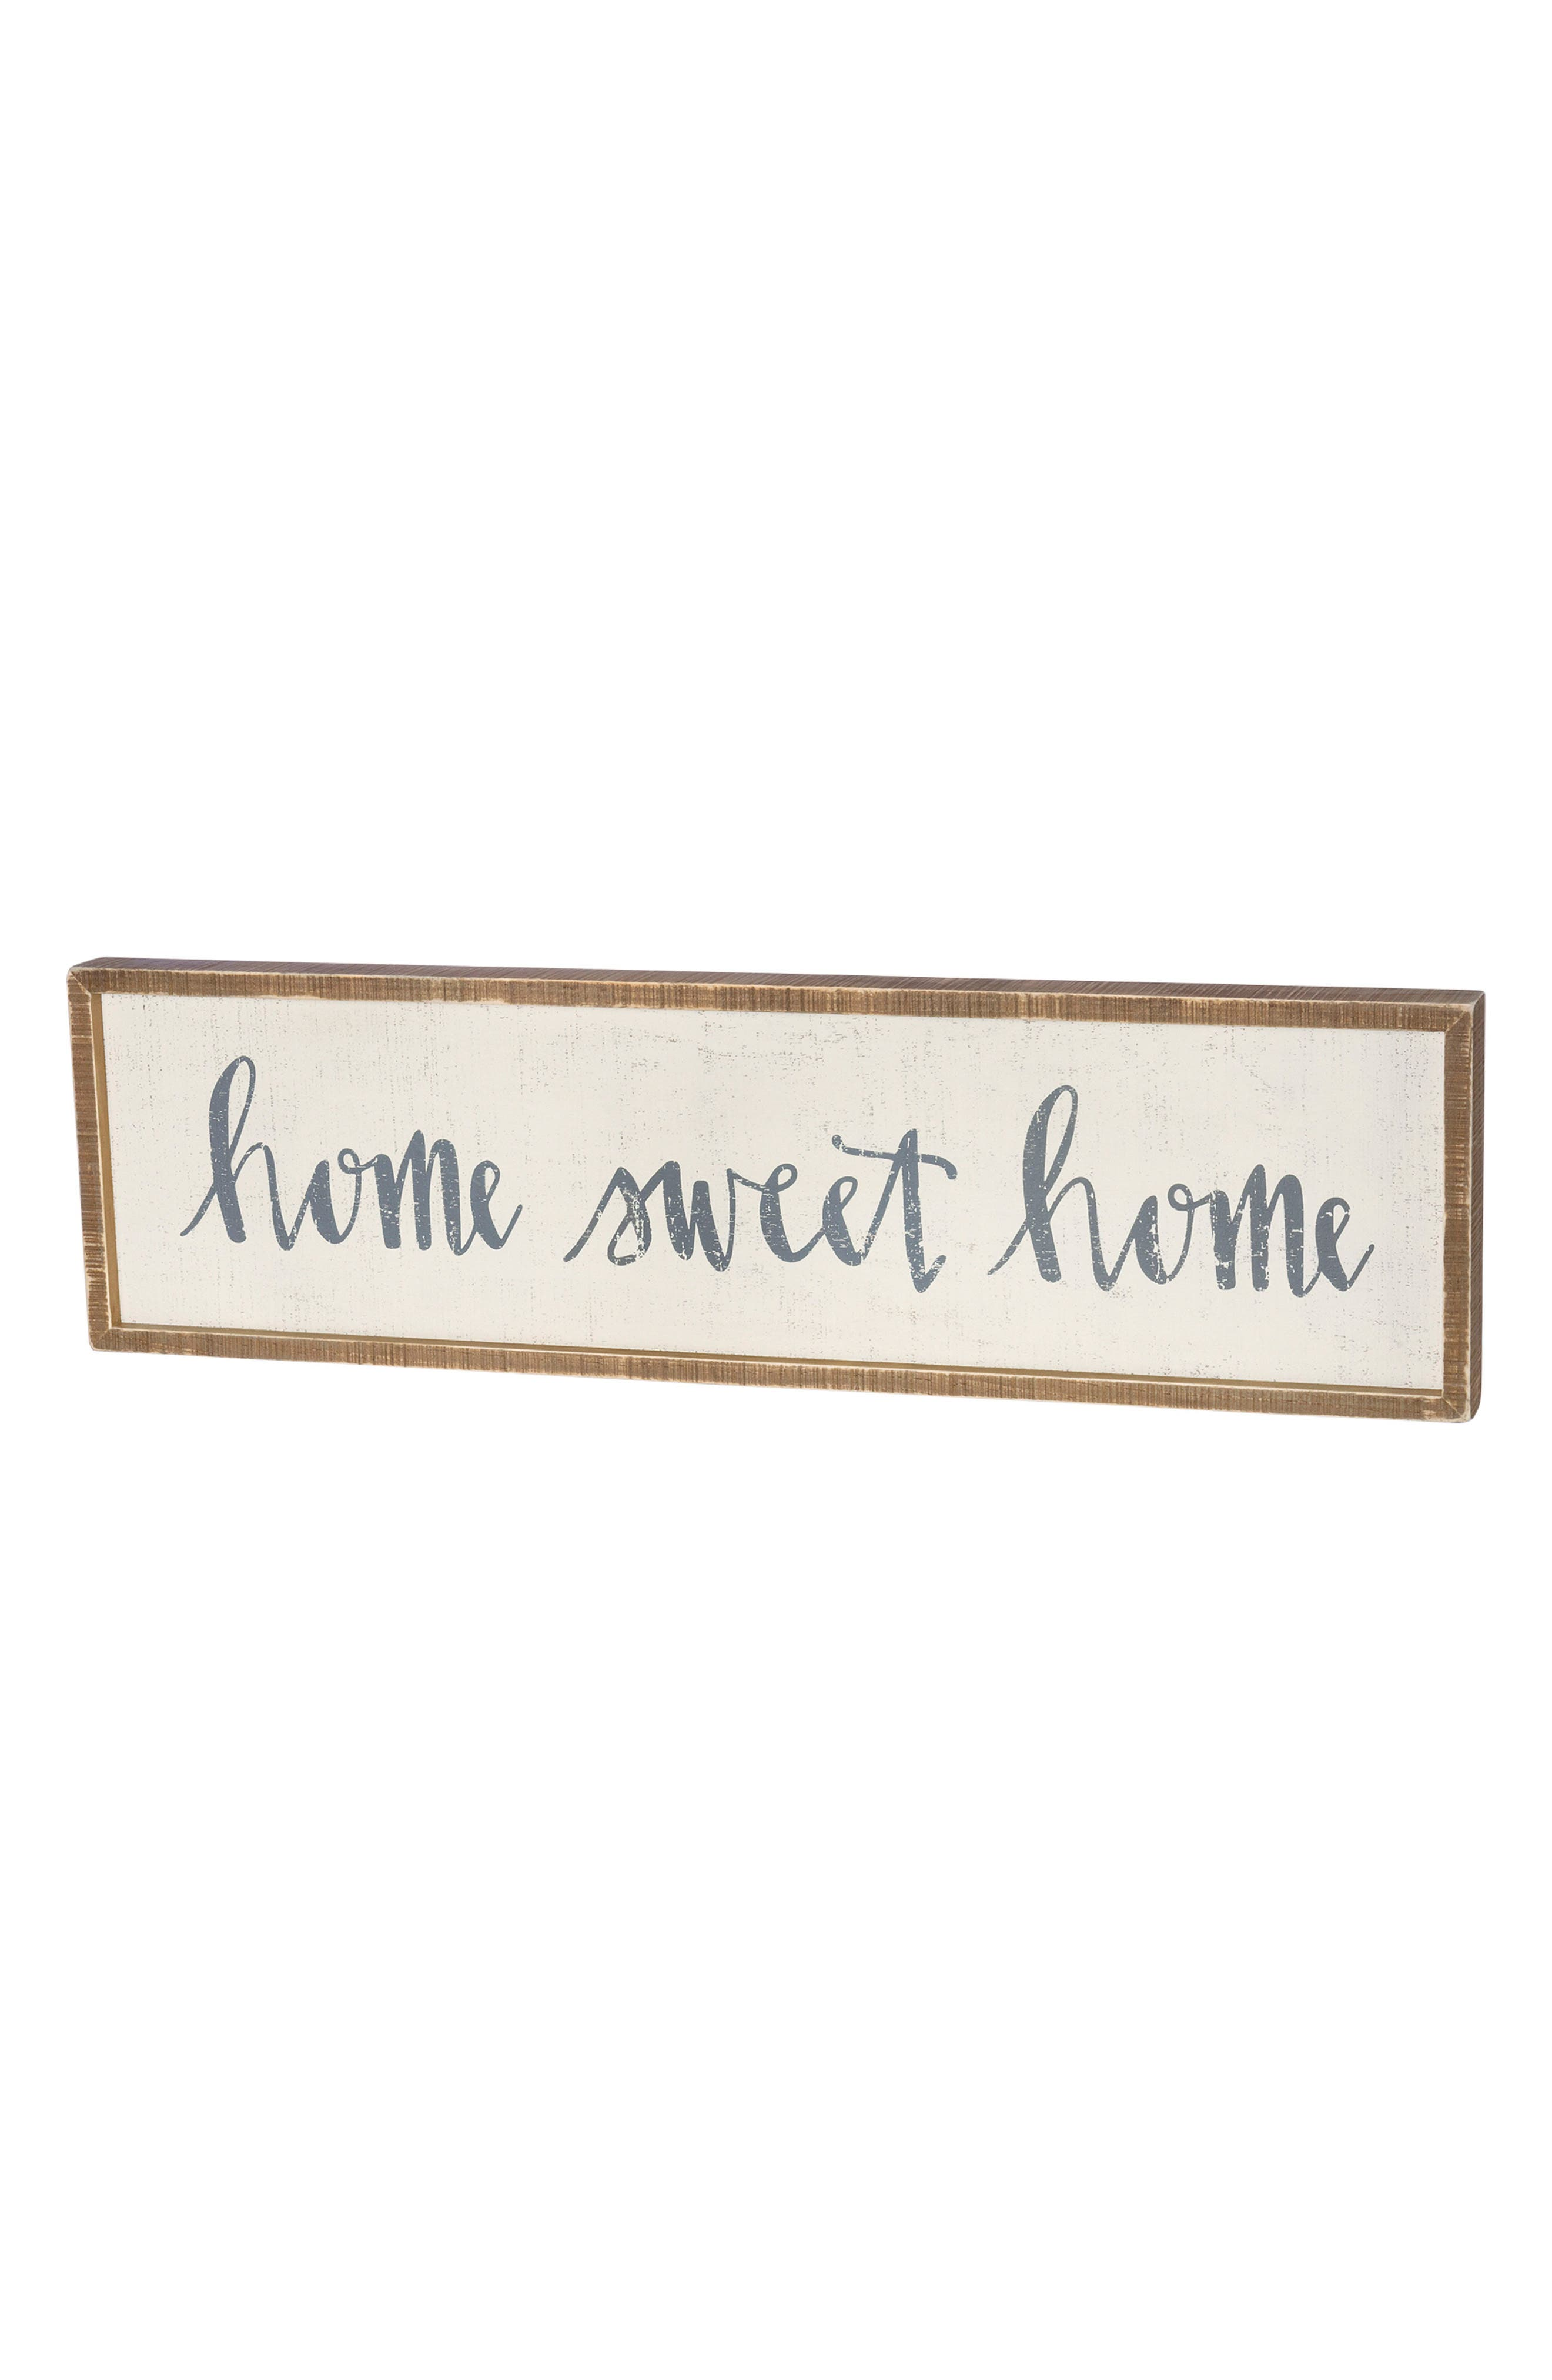 Home Sweet Home Inset Box Sign,                         Main,                         color, White